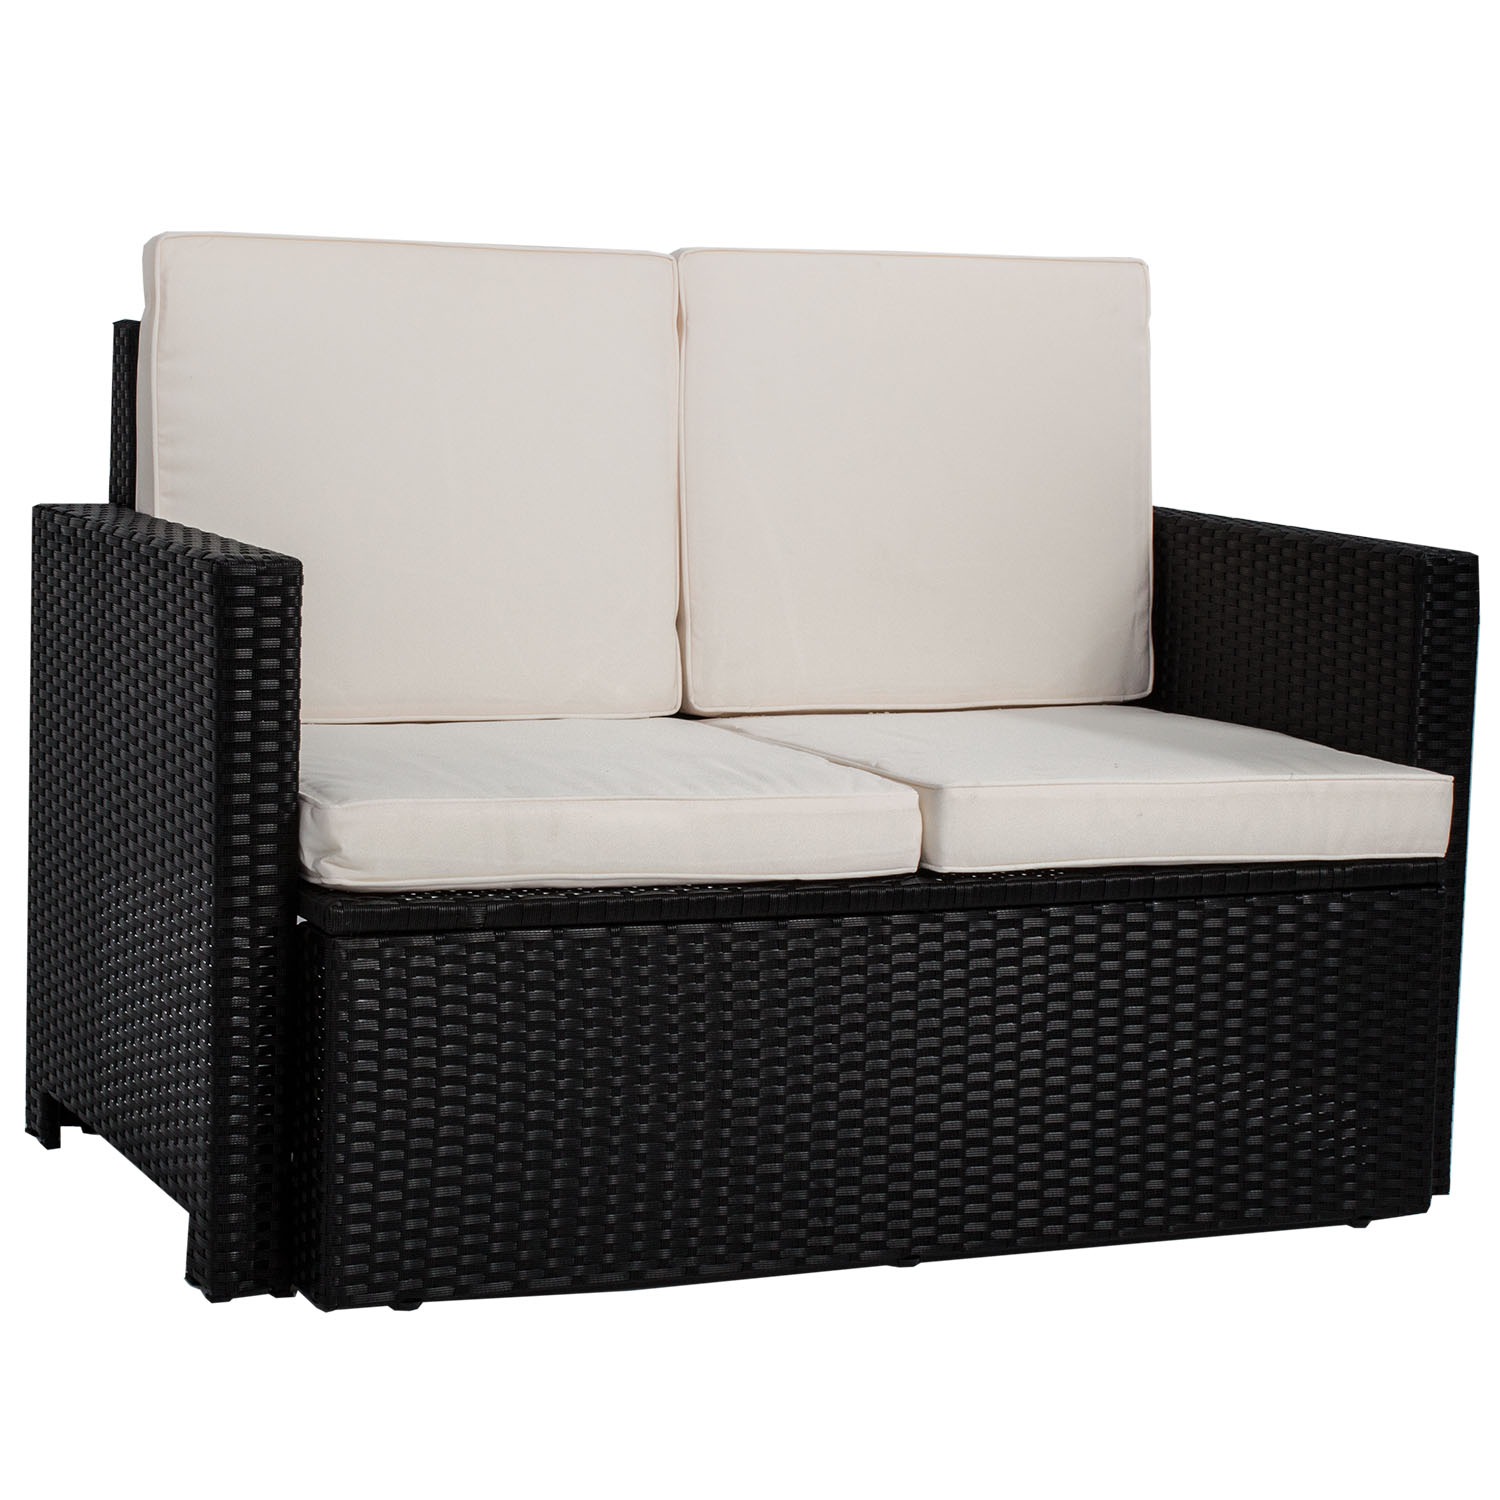 gartenm bel polyrattan lounge gartenset rattan sitzgruppe garnitur tisch samos ebay. Black Bedroom Furniture Sets. Home Design Ideas